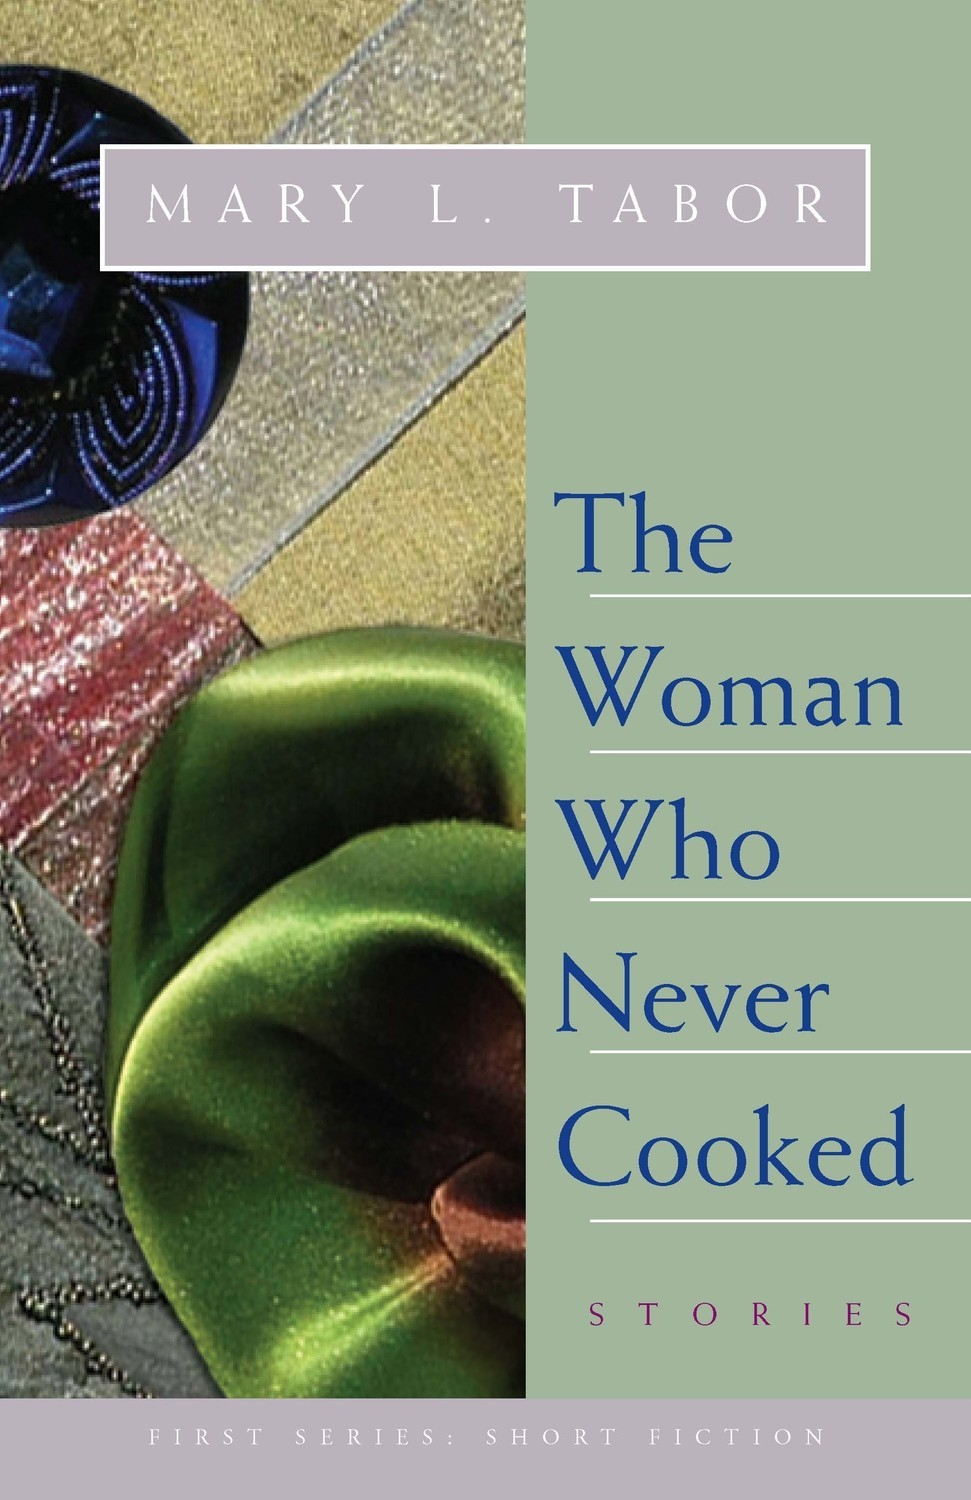 The Woman Who Never Cooked